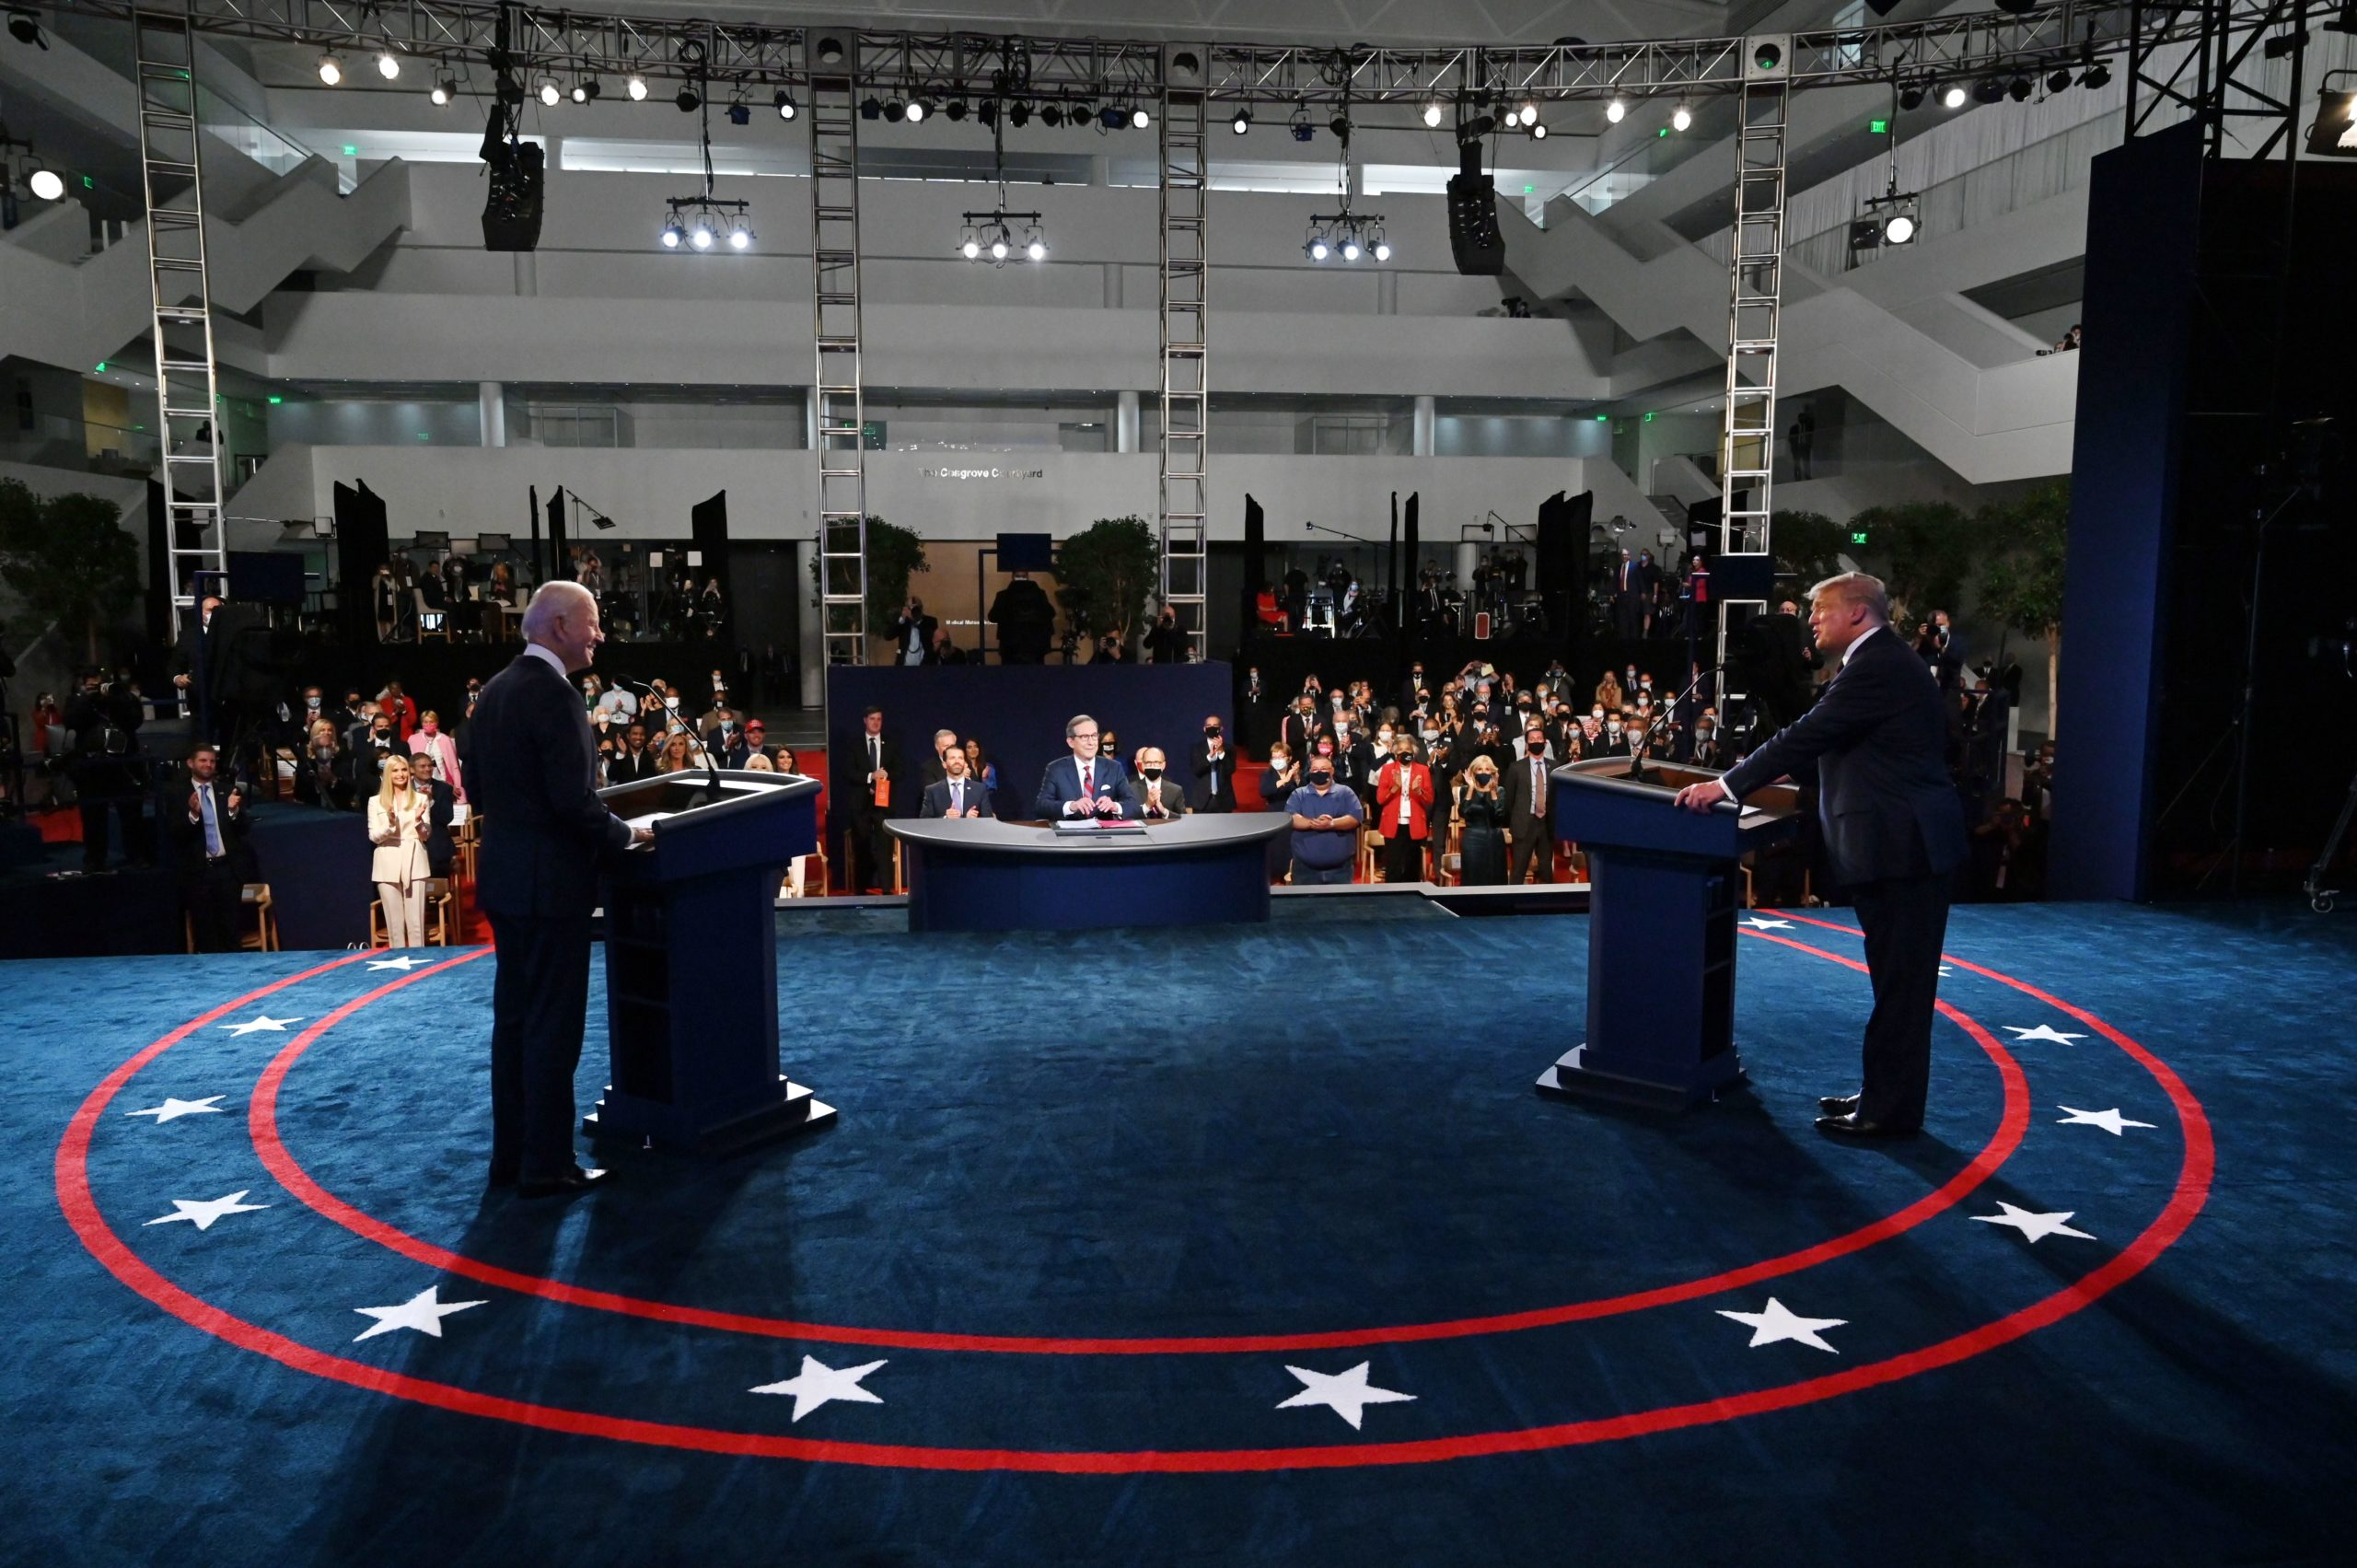 President Donald Trump and Democratic presidential candidate Joe Biden arrive for the first presidential debate at Case Western Reserve University and Cleveland Clinic in Cleveland, Ohio, on September 29, 2020. (Olivier Douliery/Pool/AFP via Getty Images)